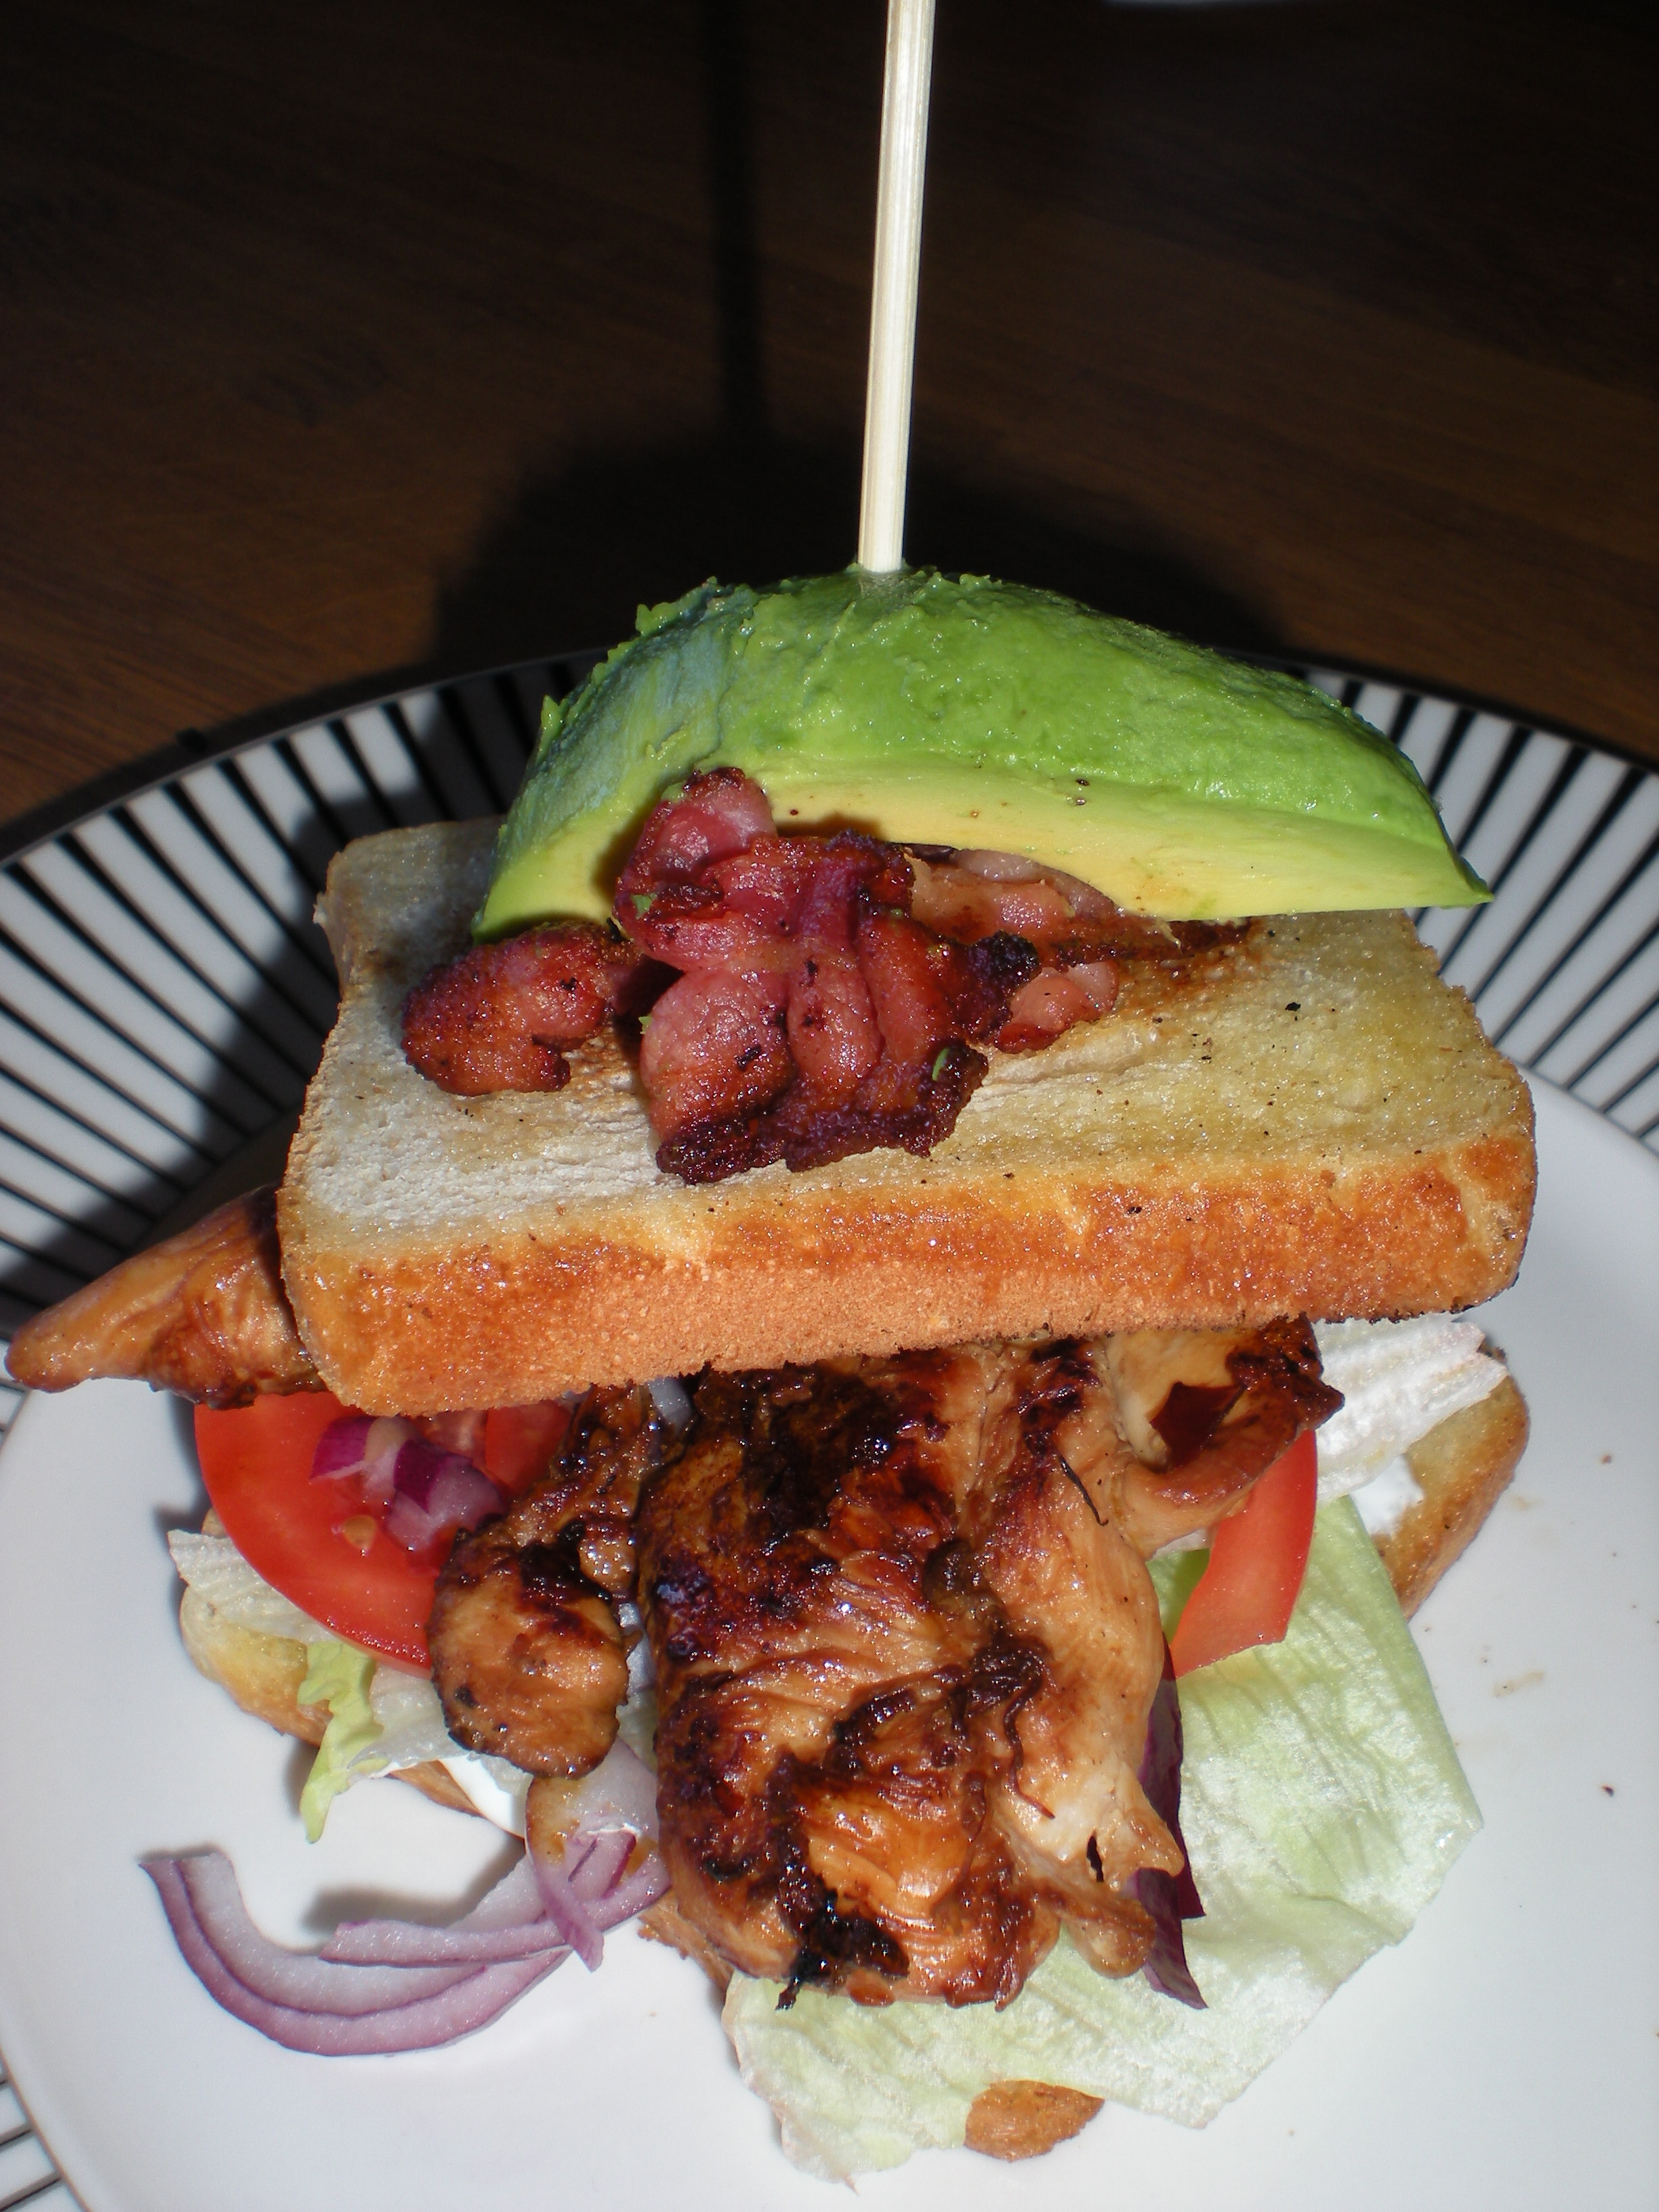 Clubsandwich med bacon och avocado